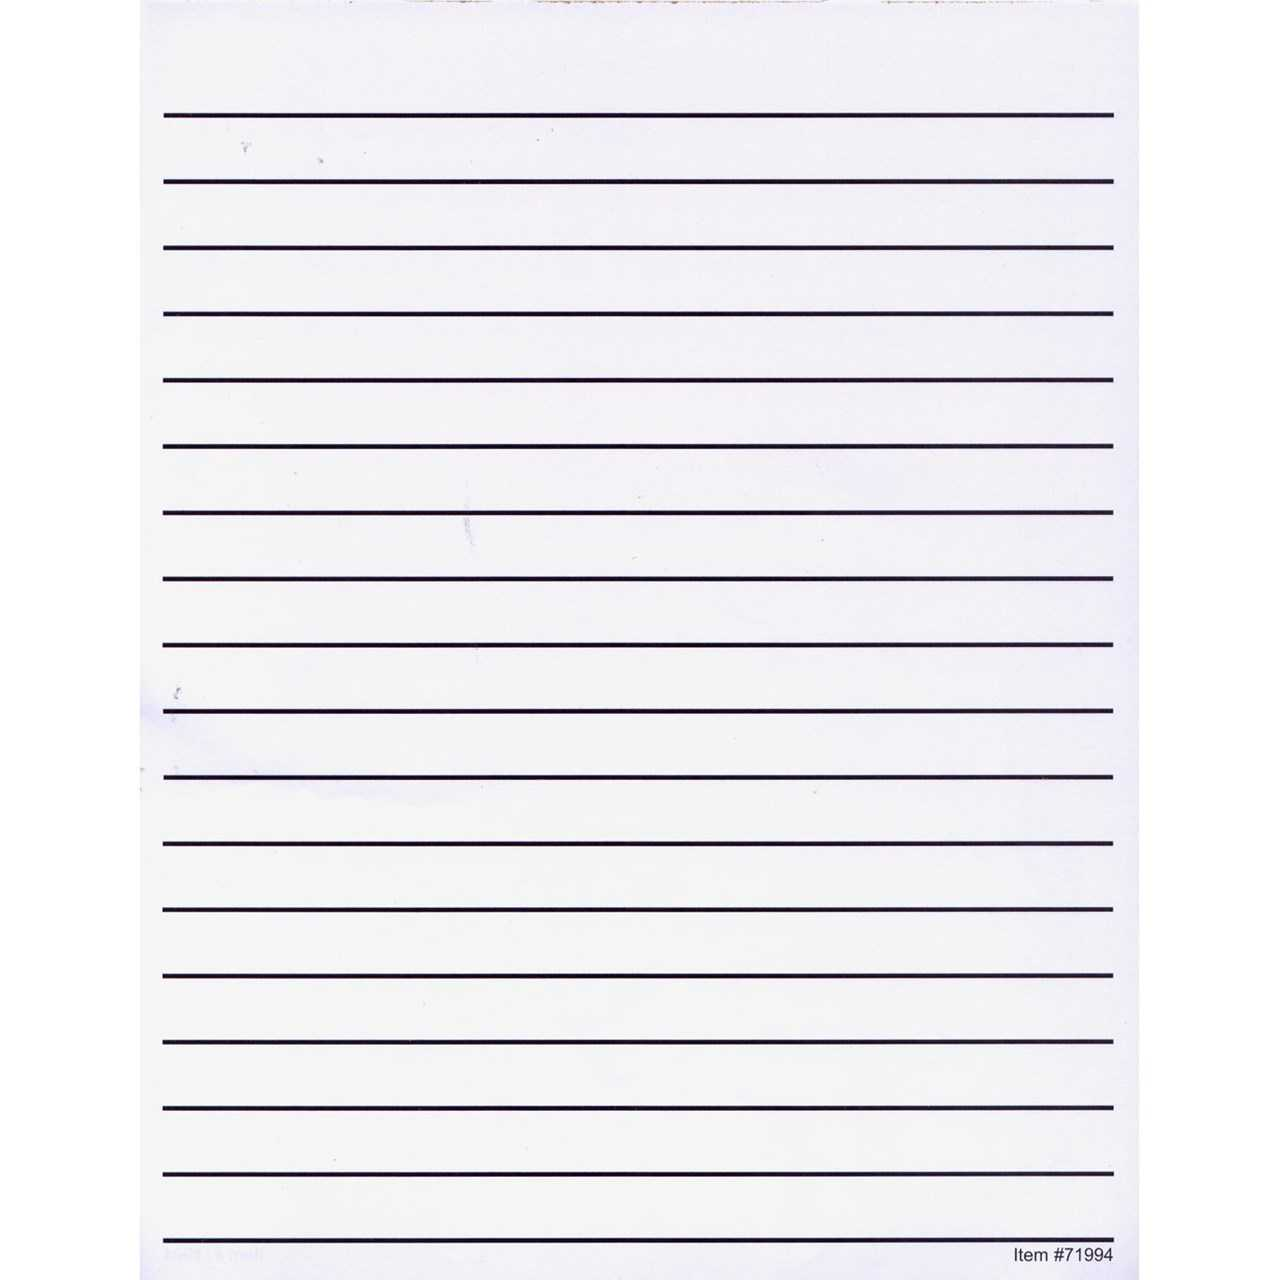 """black lined paper, black and white lined paper, black lined graph paper, lined black paper, black lined paper for gel pens, thick black lined paper, black paper lined, black lined paper template, cute lined paper black and white, printable black lined paper, free printable pink and black lined note paper, black and white journal lined paper background, black and white lined paper with ny city border, clip art heart lined paper black and white, black lined paper 8x10 template, basic black filler paper 3/8 lined, black kraft paper foil lined flat pouch, black lined prontable graph paper, black lined paper printable, dark black lined paper, usps box lined with black paper, print black lined kids paper, equal black and white lined paper, thick black lined paper template, black lined paper text, black and white lined paper background, black lined paper template to download, black lined paper with swirly border, lined paper clipart black and white, amazon.co uk 8 x 10 lined paper black leather journal, wide ruled composition book w/lined paper, 100 ct., black, black lined paper notebook, lined paper with black thumb tack, spiral notebook with black lined paper, black and white drawing lined paper, thank you note on black card or insert a lined paper, easter lined paper black line, free printable bold black lined paper, black lined graph paper template, 12"""" black paper sleeves poly lined, black and white fancy lined paper printable borders, free black and white lined paper with nypd, clip art flower lined paper black and white, lined pretty paper black and white with butterflys, black lined paper pocket notebook, black lined paper note sheet, black lined 30 pound paper, lined black and white paper design printables, lined border paper with kids black and white, black clipboard with yellow lined paper"""